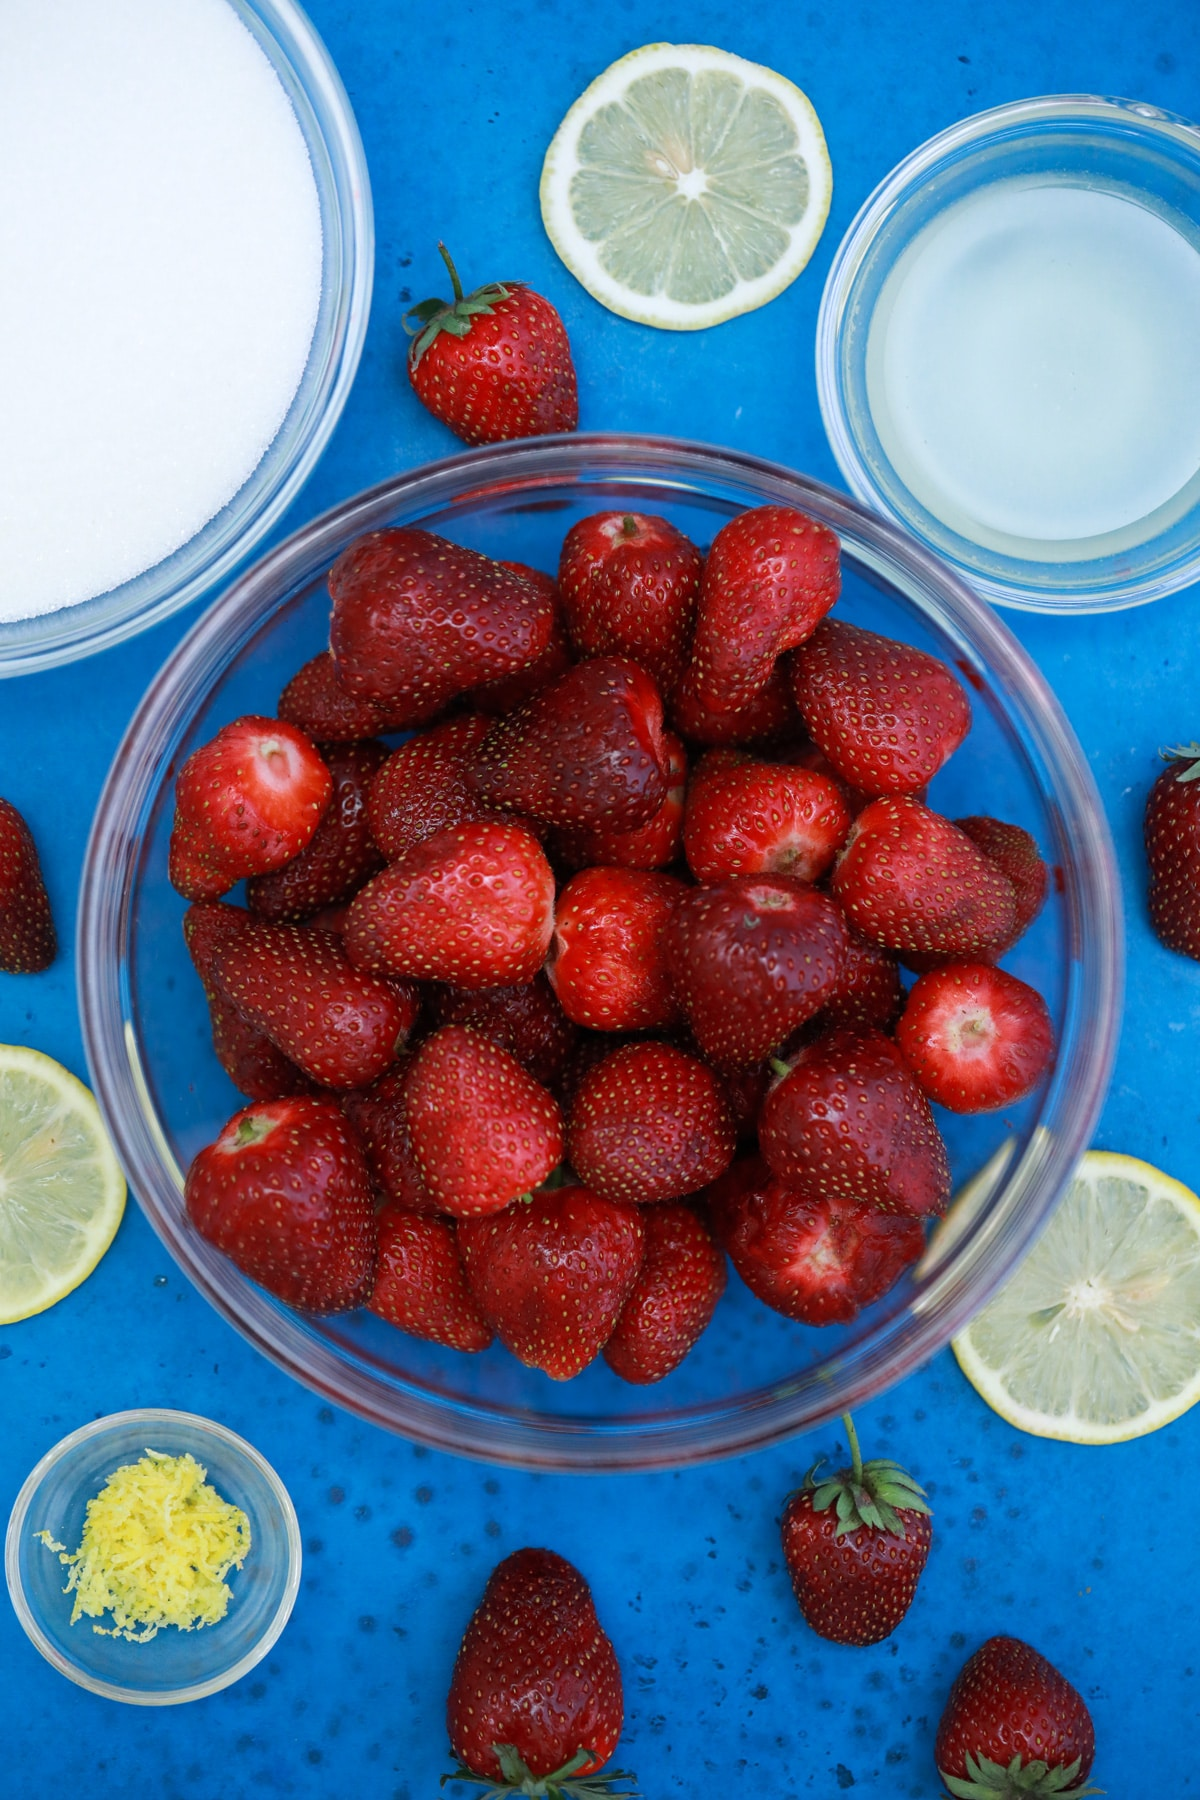 Ingredients for strawberry jam in glass bowls on blue table